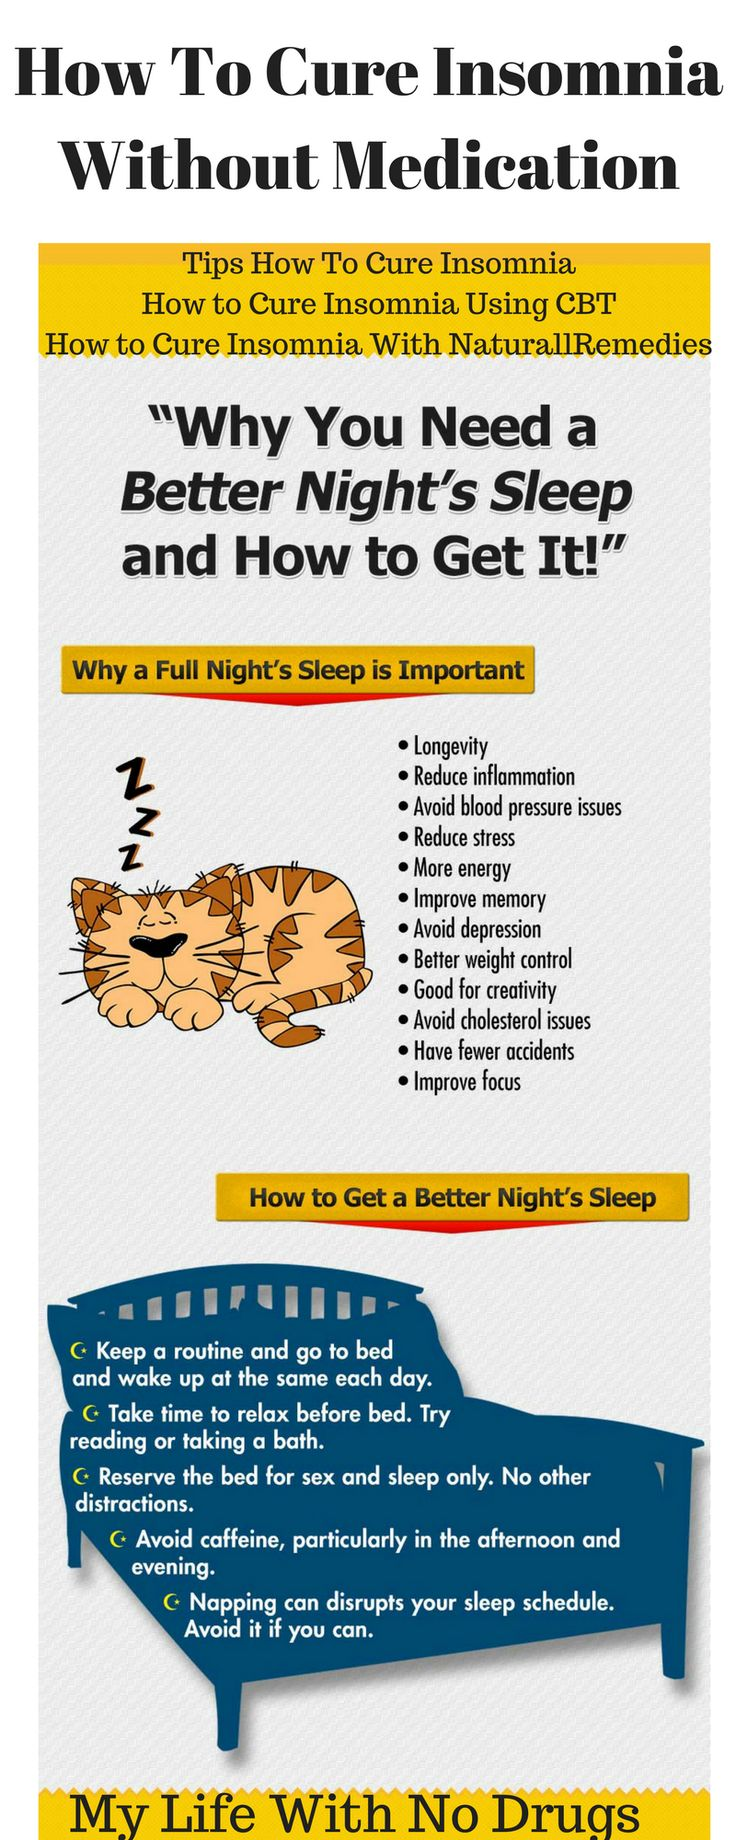 There are many answers to the question of how to cure #insomnia #insomniaremedies